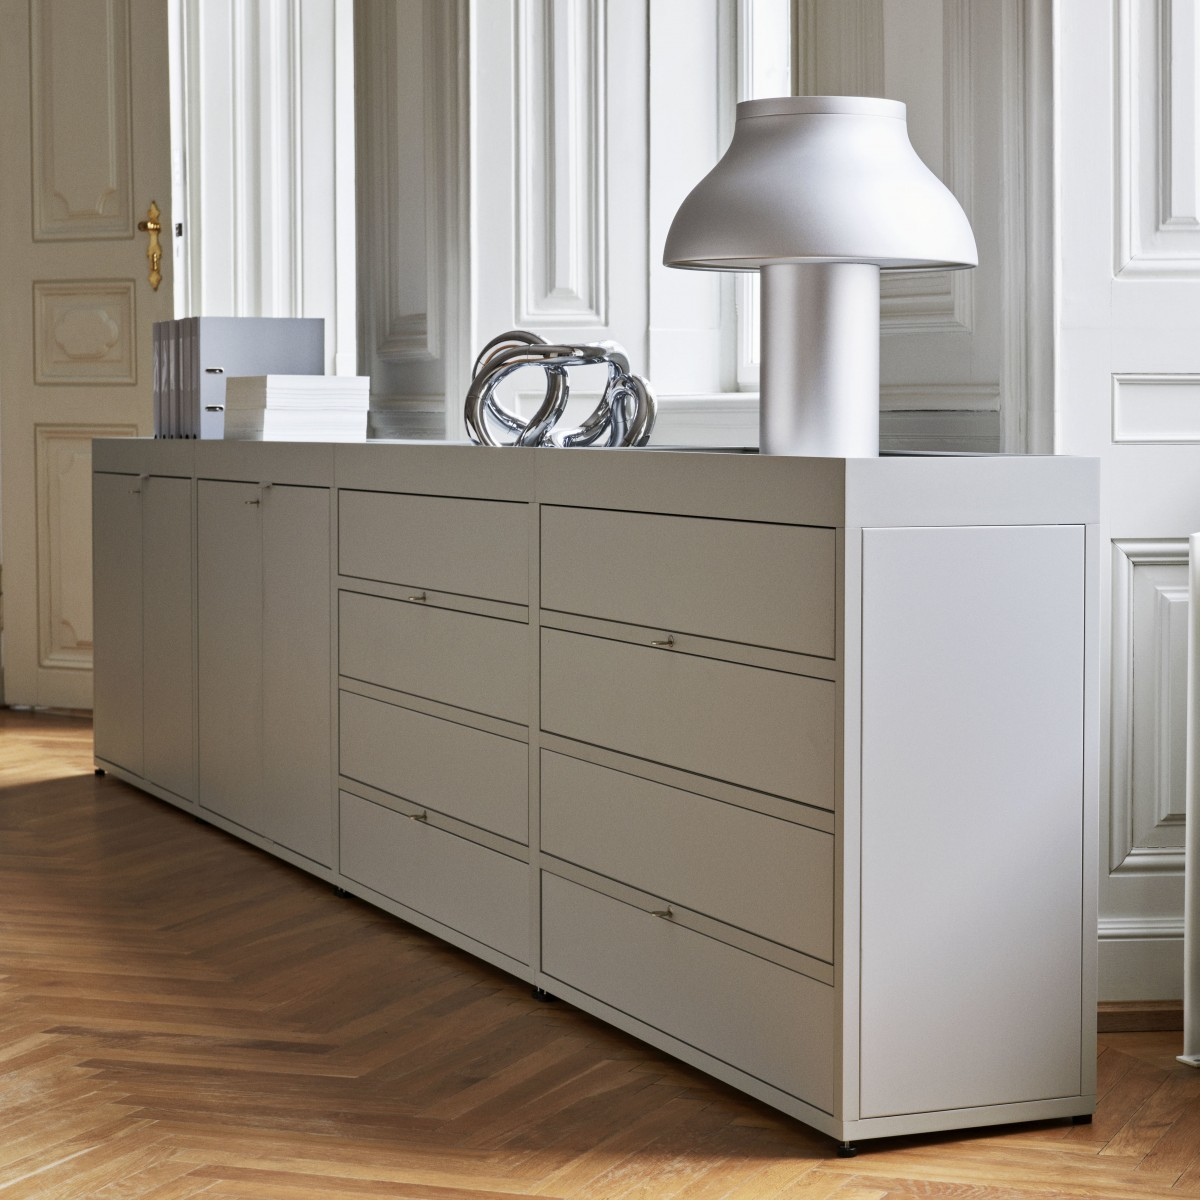 Buffet New Order Hay - Commodes Sur Mesure